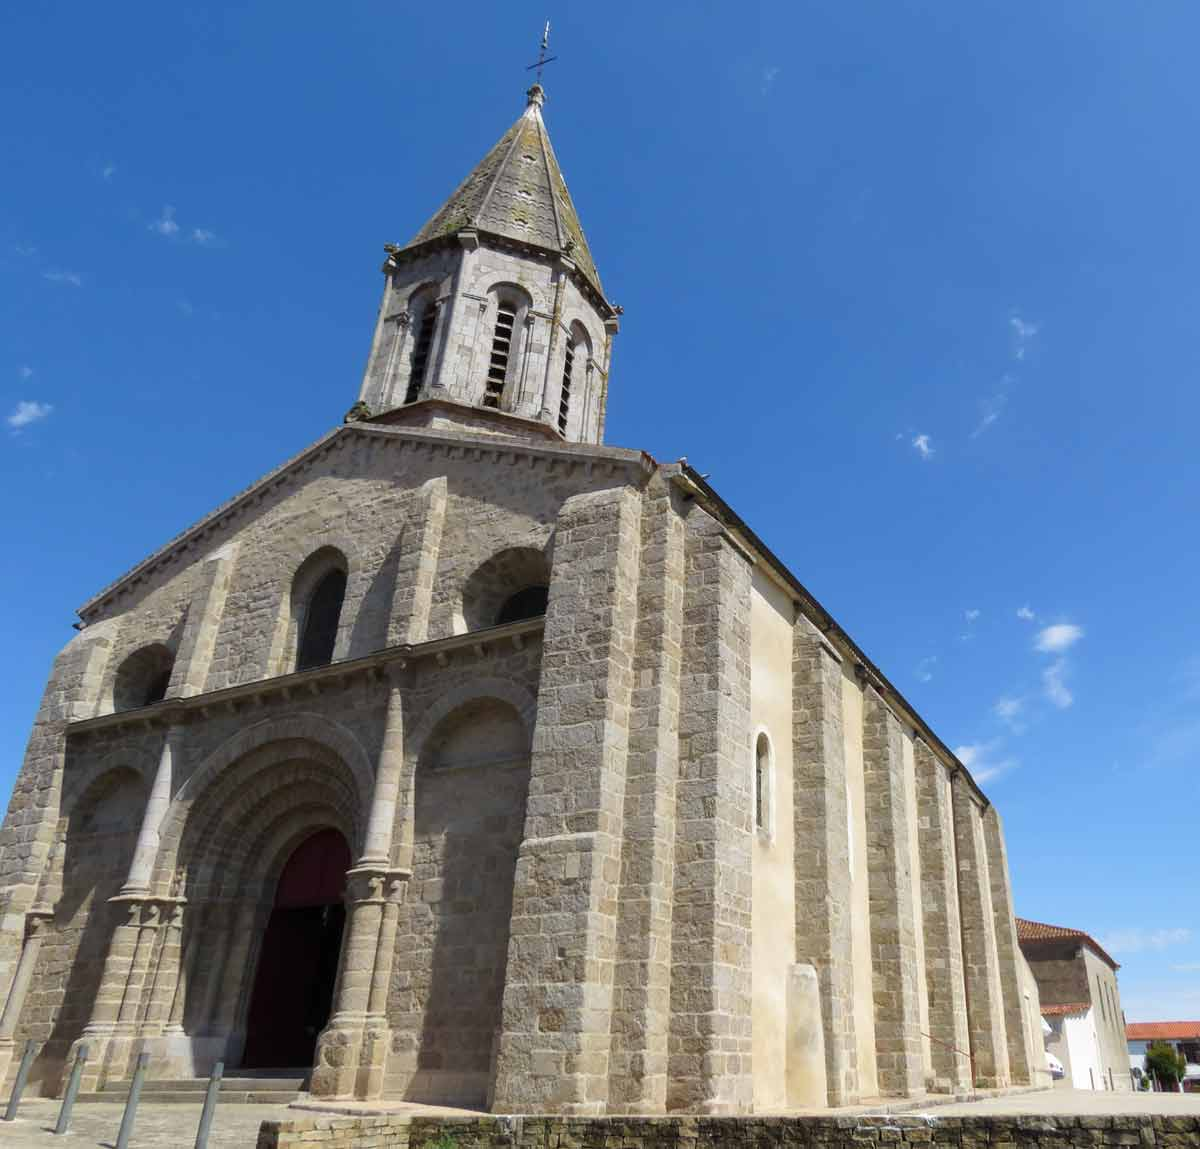 moutiers-les-mauxfaits église